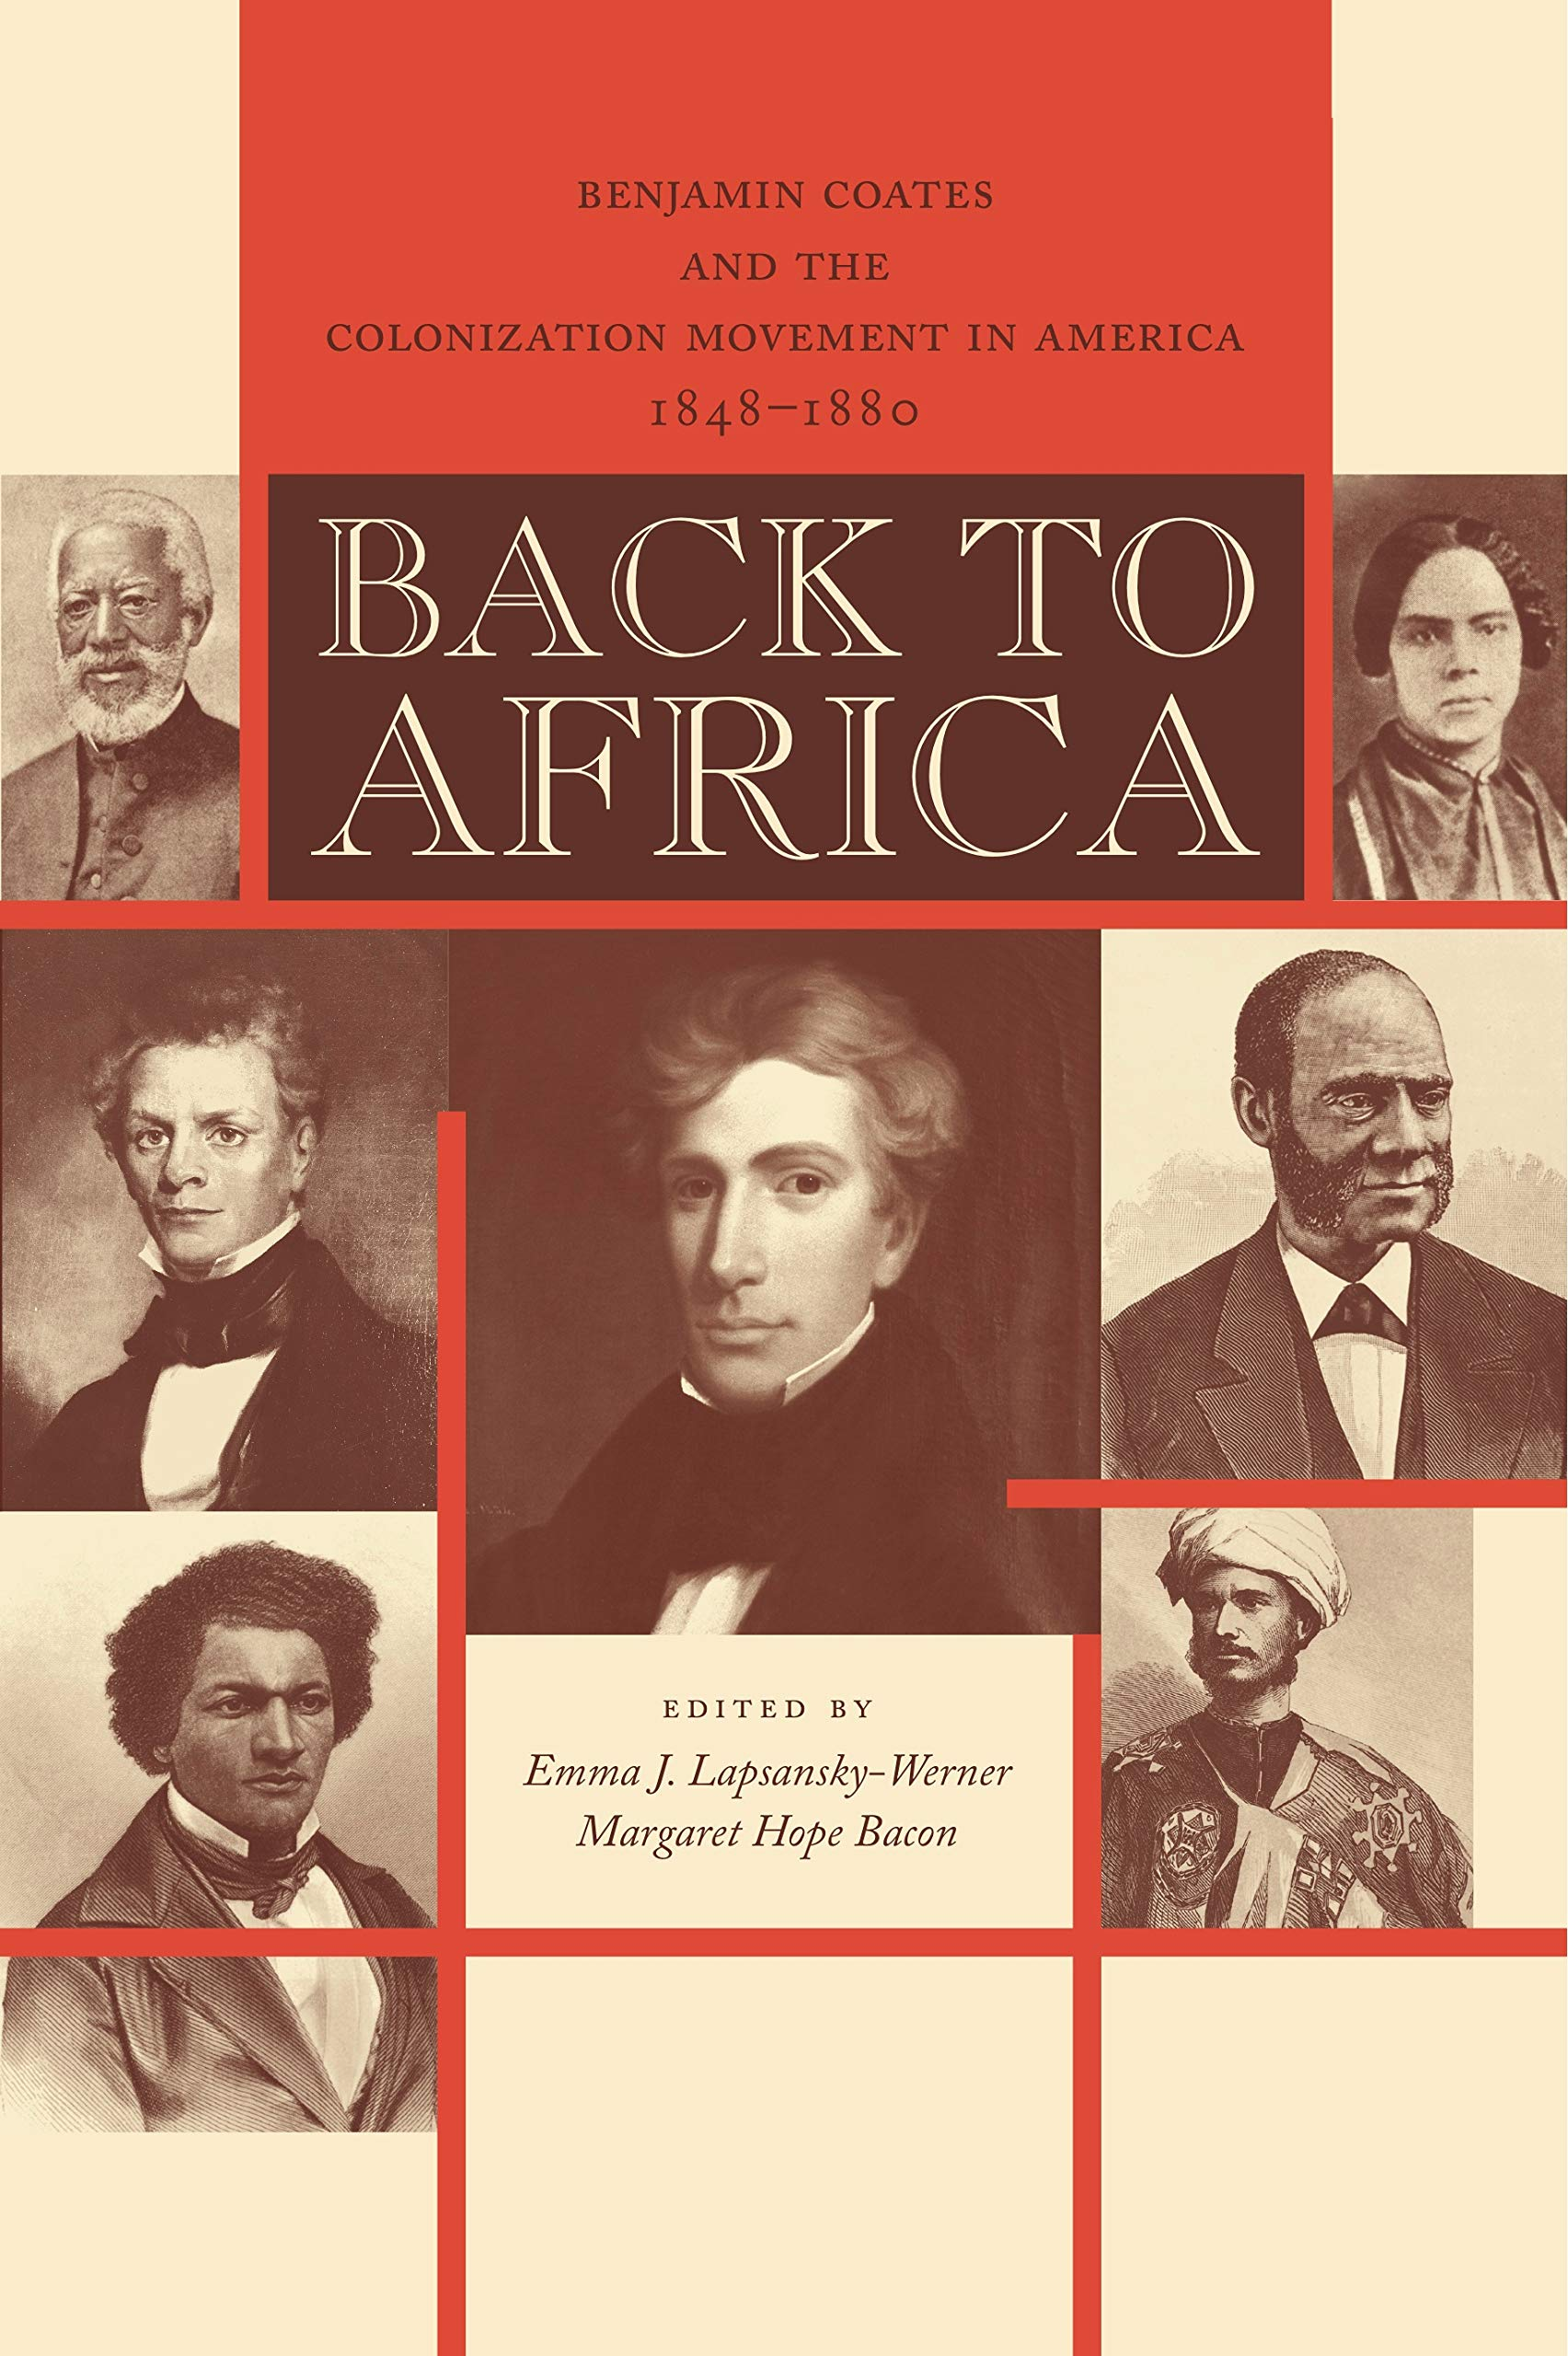 Back To Africa: Benjamin Coates And The Colonization Movement In America 1848-1880